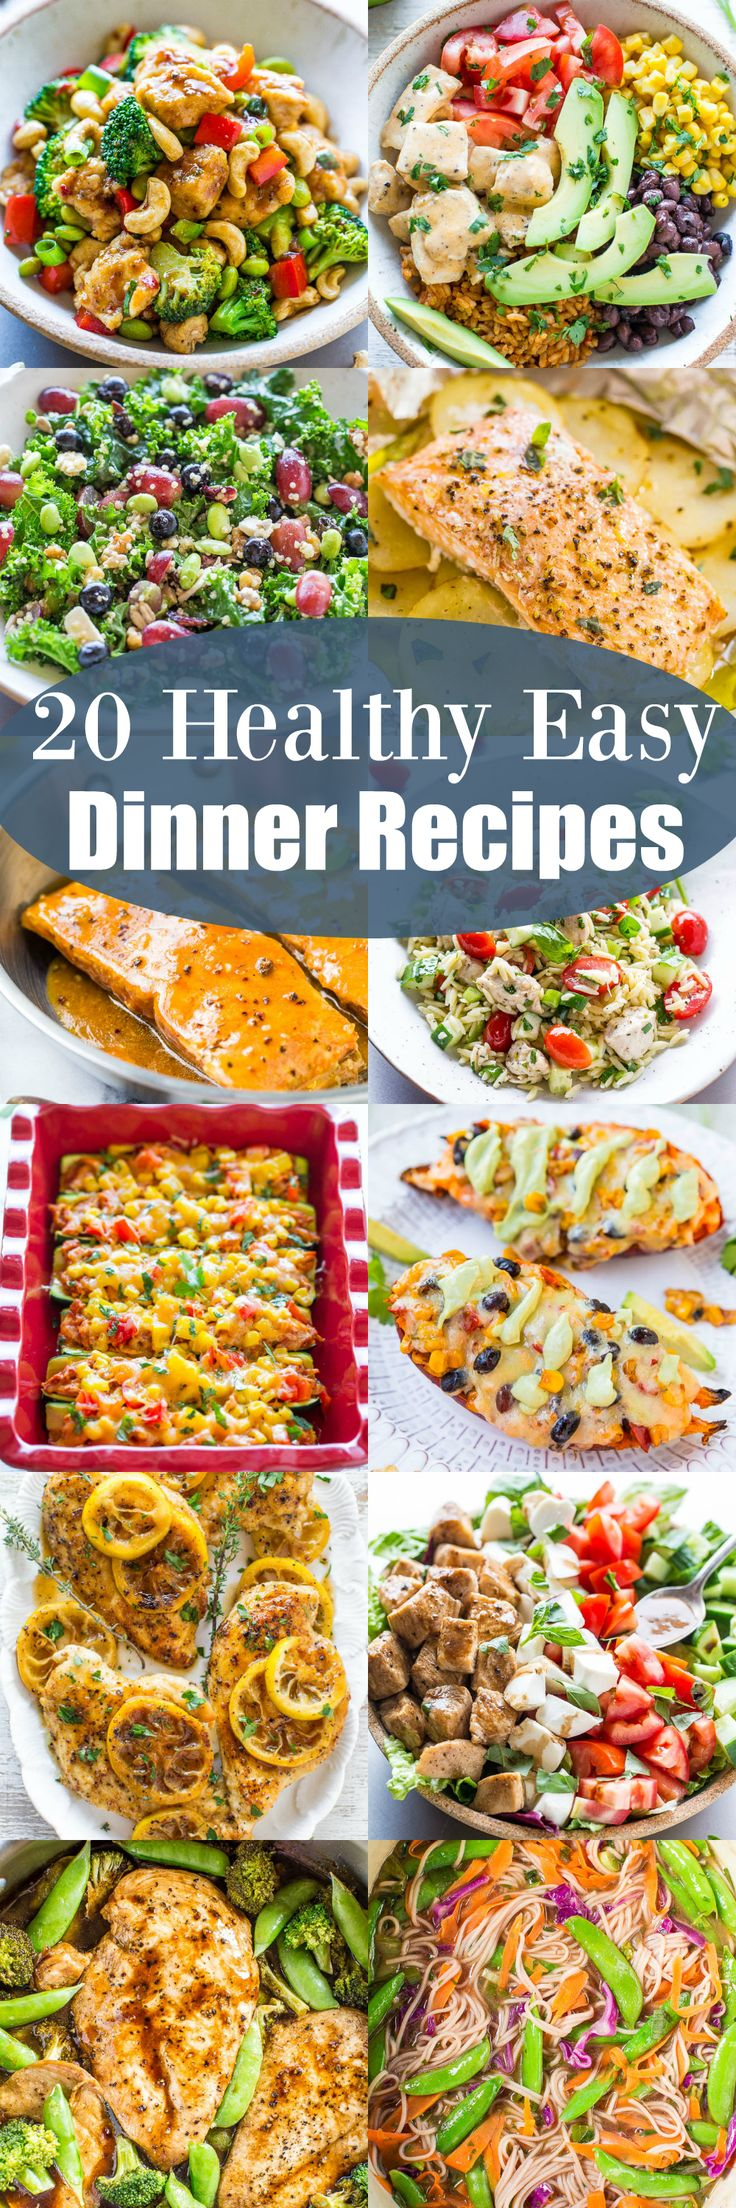 102 best healthy recipes images on pinterest healthy eats savory 20 healthy easy dinner recipes looking for healthy easy recipes that taste great and forumfinder Choice Image